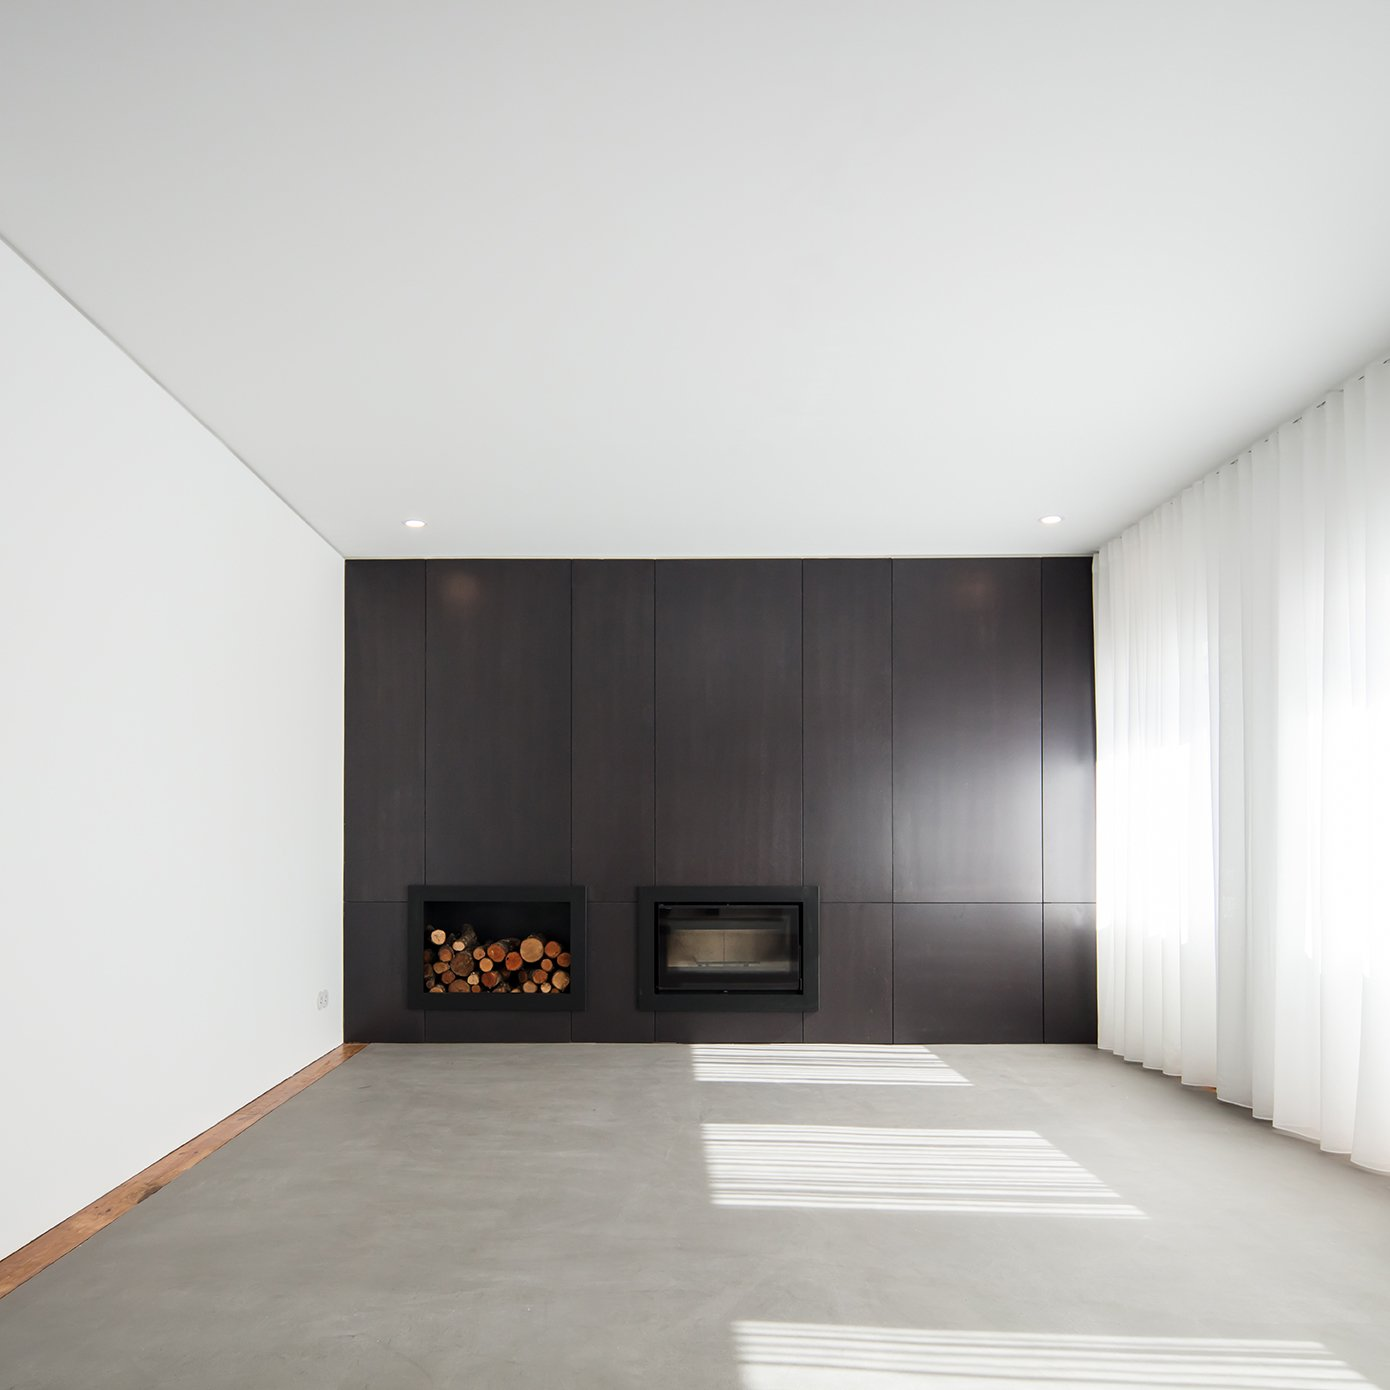 """Sao Francisco House is a minimalist residence located in Guarda, Portugal, designed by Filipe Pina. The project is an urban typical house of the first half of the 20th century, presenting three sides and a garden. The surrounding buildings are characterized by several types of construction, a consequence of the successive city urbanistic growth stages. The clients wanted a pragmatic solution to the project, """"willing to renew and rehabilitate the house with minimum demolition and in the most economical way"""". The optimal conditions and building characteristics of the house allowed for a good project development. Soon, the designers understood that the living spaces of the house needed to be simplified, as it did show some old-fashioned elements added over time by the different owners, with external parts losing their coherence and some gloomy interiors agglomerated in quite messy, obsolete and isolated rooms. They kept the original functional layout of the house, where we only inserted few changes in view of adapting it to actual modern requirements, namely for the kitchen, toilets and bathrooms, and very seldom demolitions which allowed new internal paths. It was also decided to keep the original floors, wooden structures, some the roof and surfaces. Now the house lives from its inside where all spaces merge into one unique light and bright room.  Interiors"""